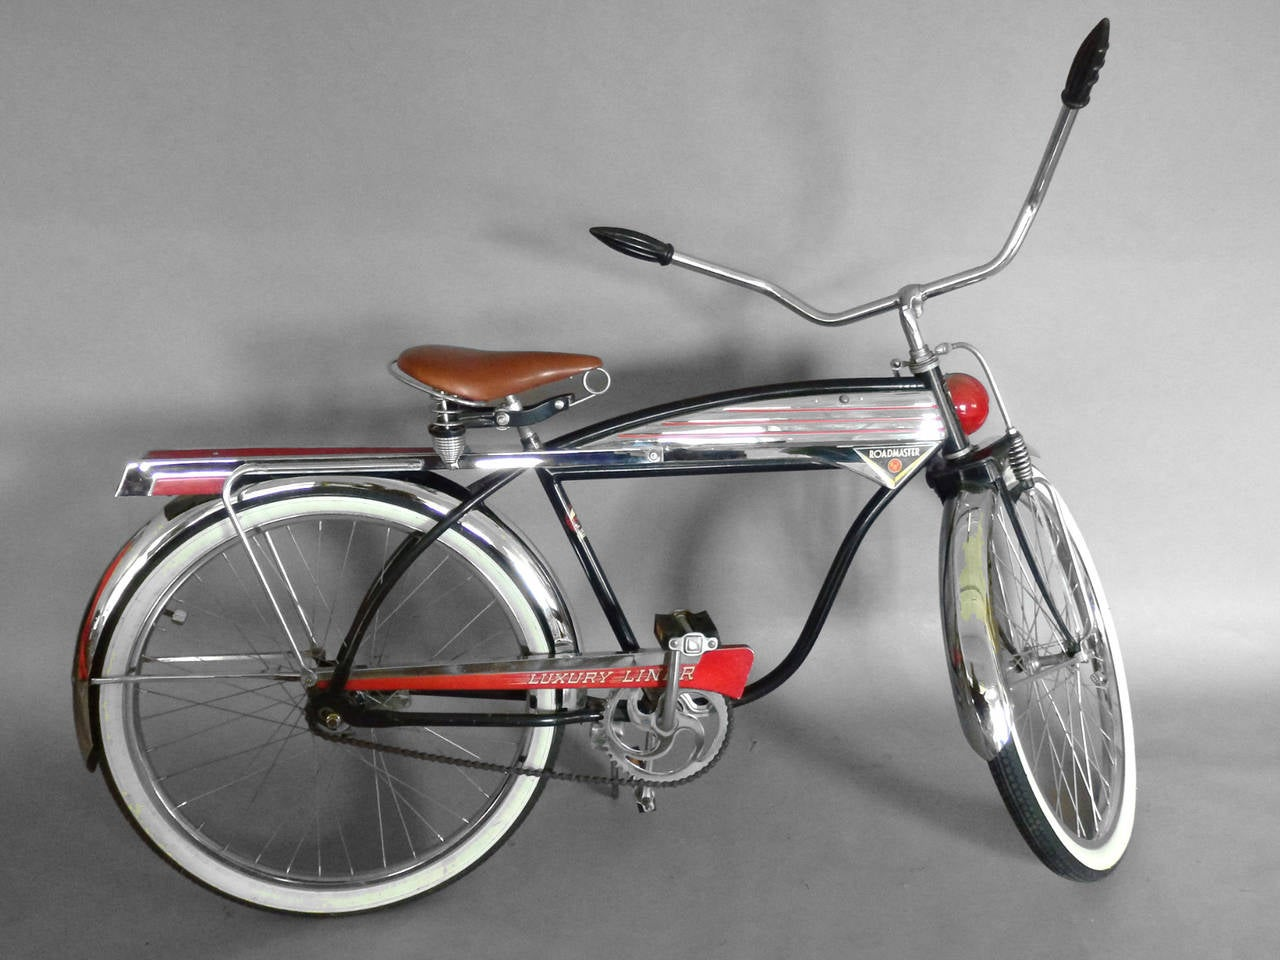 AMF Luxury Liner Roadmaster Balloon Tire Bicycle For Sale